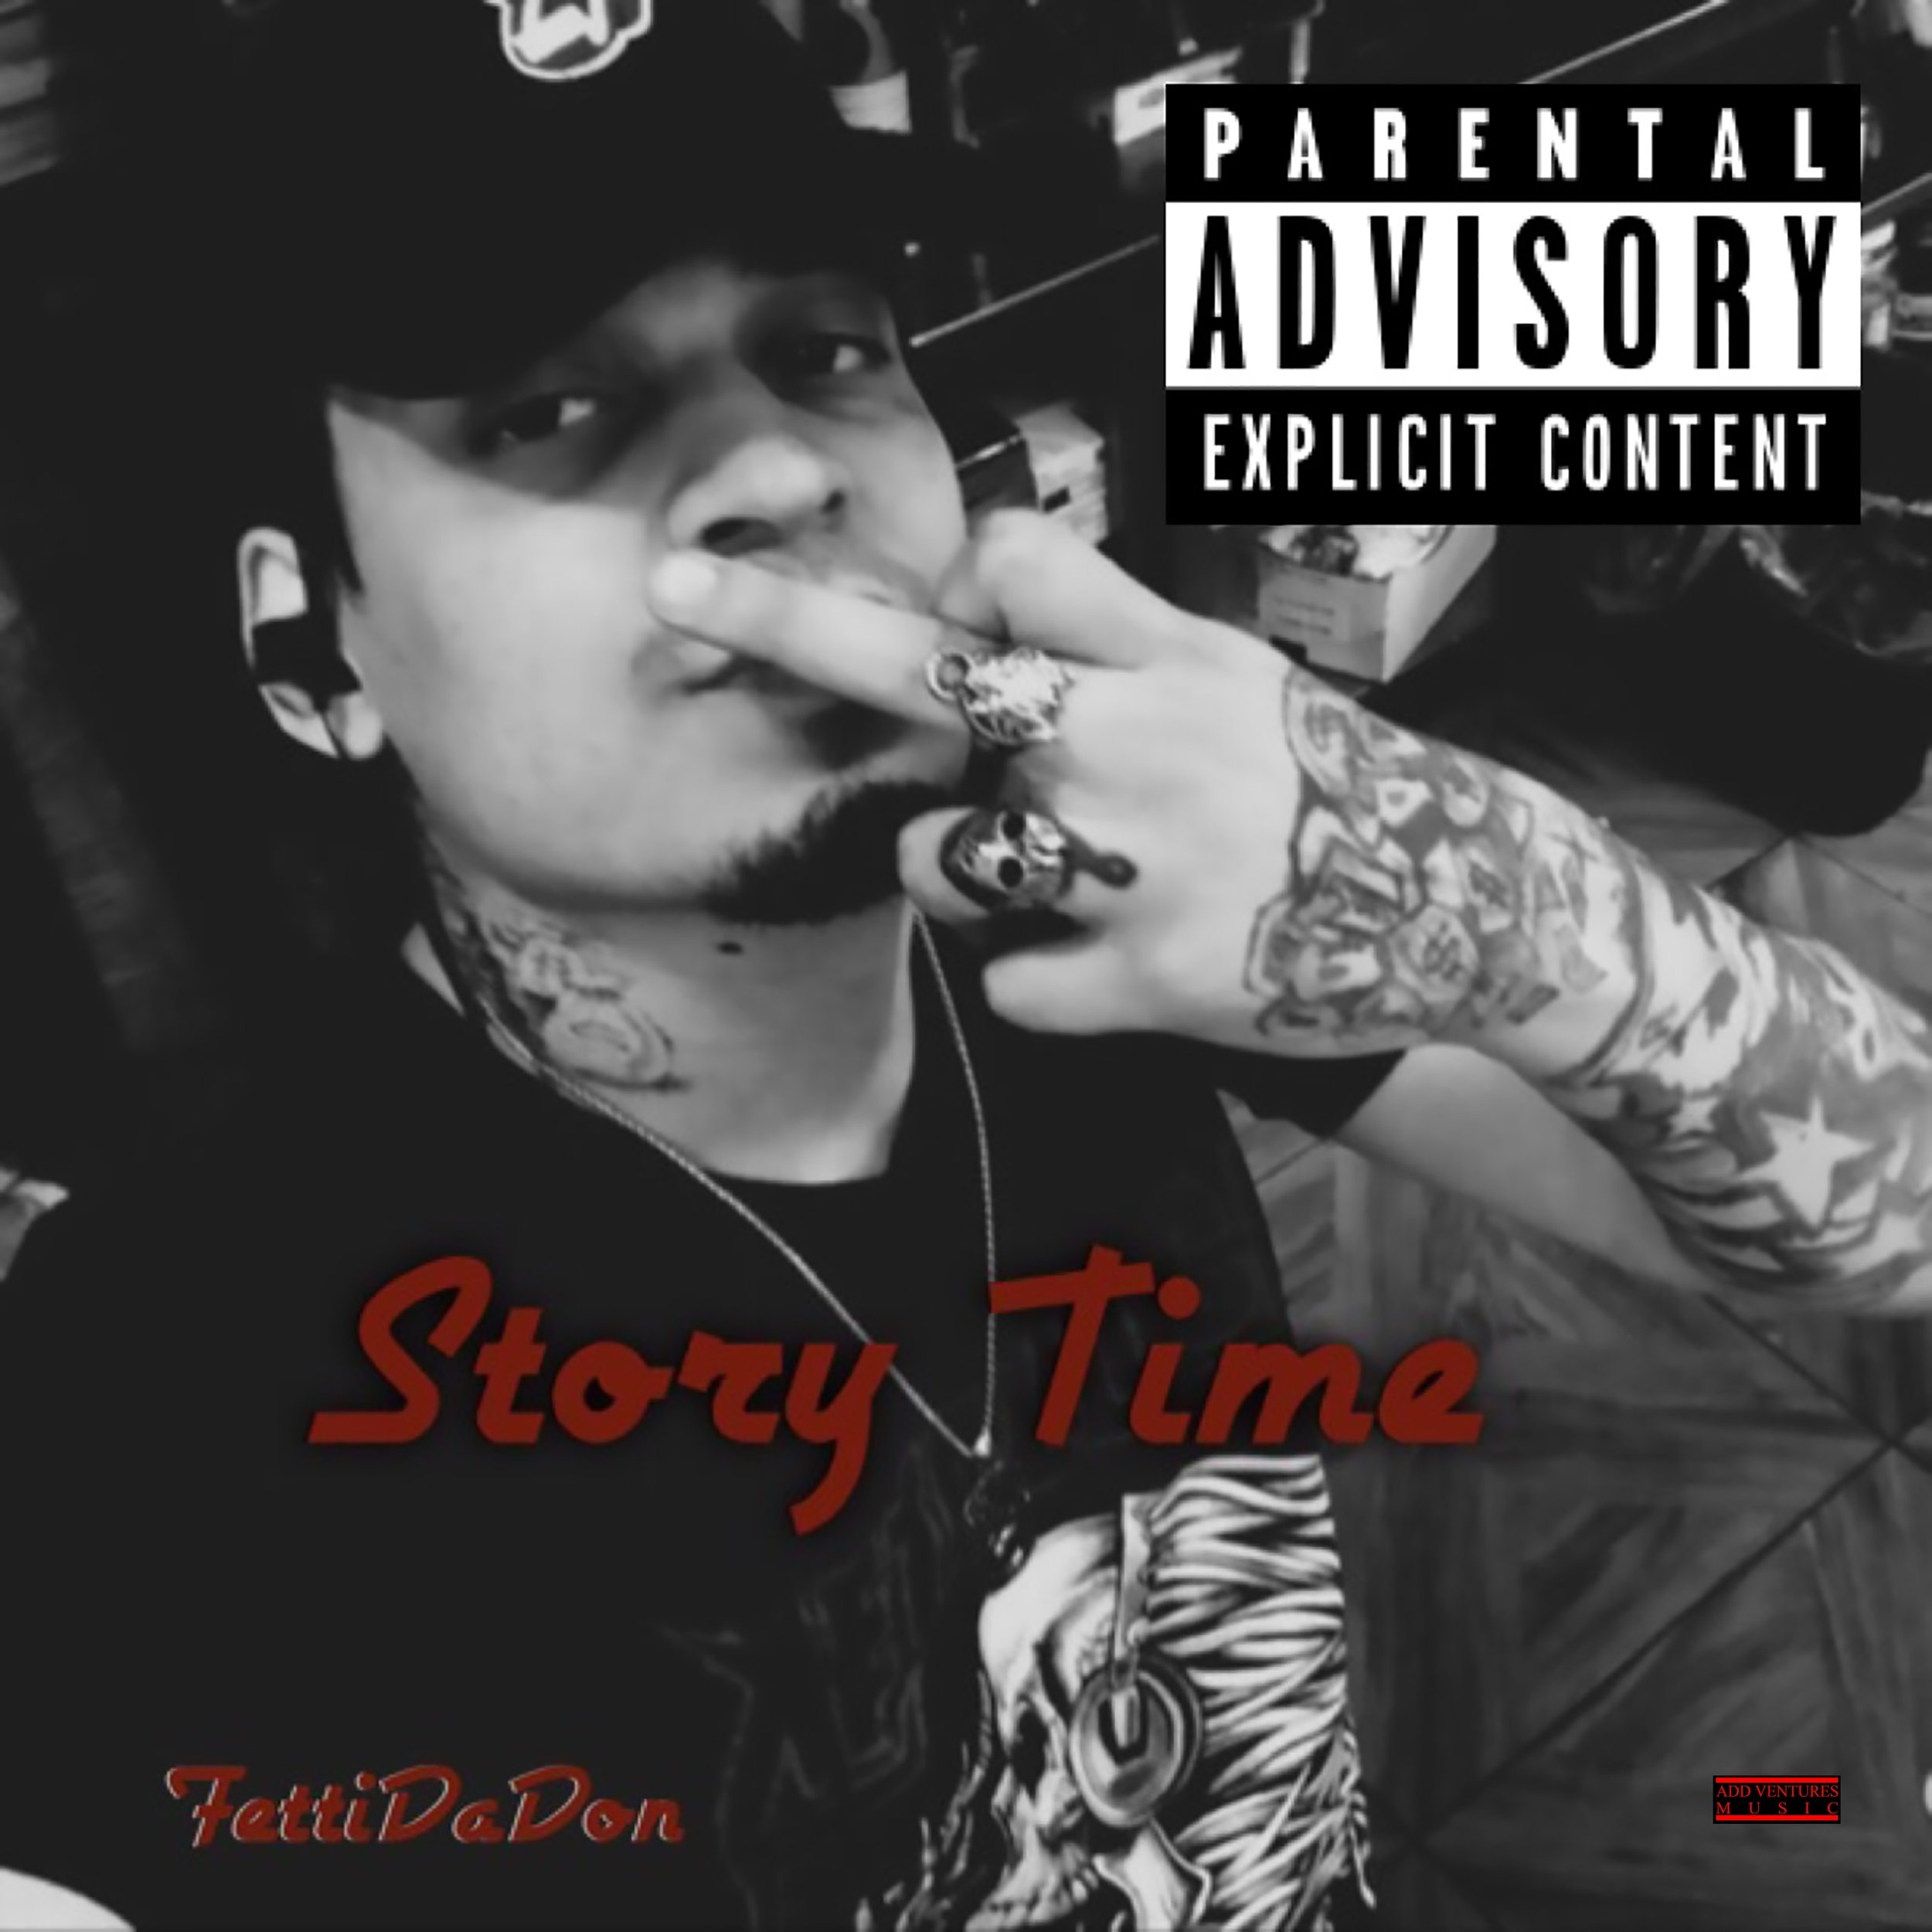 Fetti Da Don - Story Time - Explicit Single - Rev.jpeg